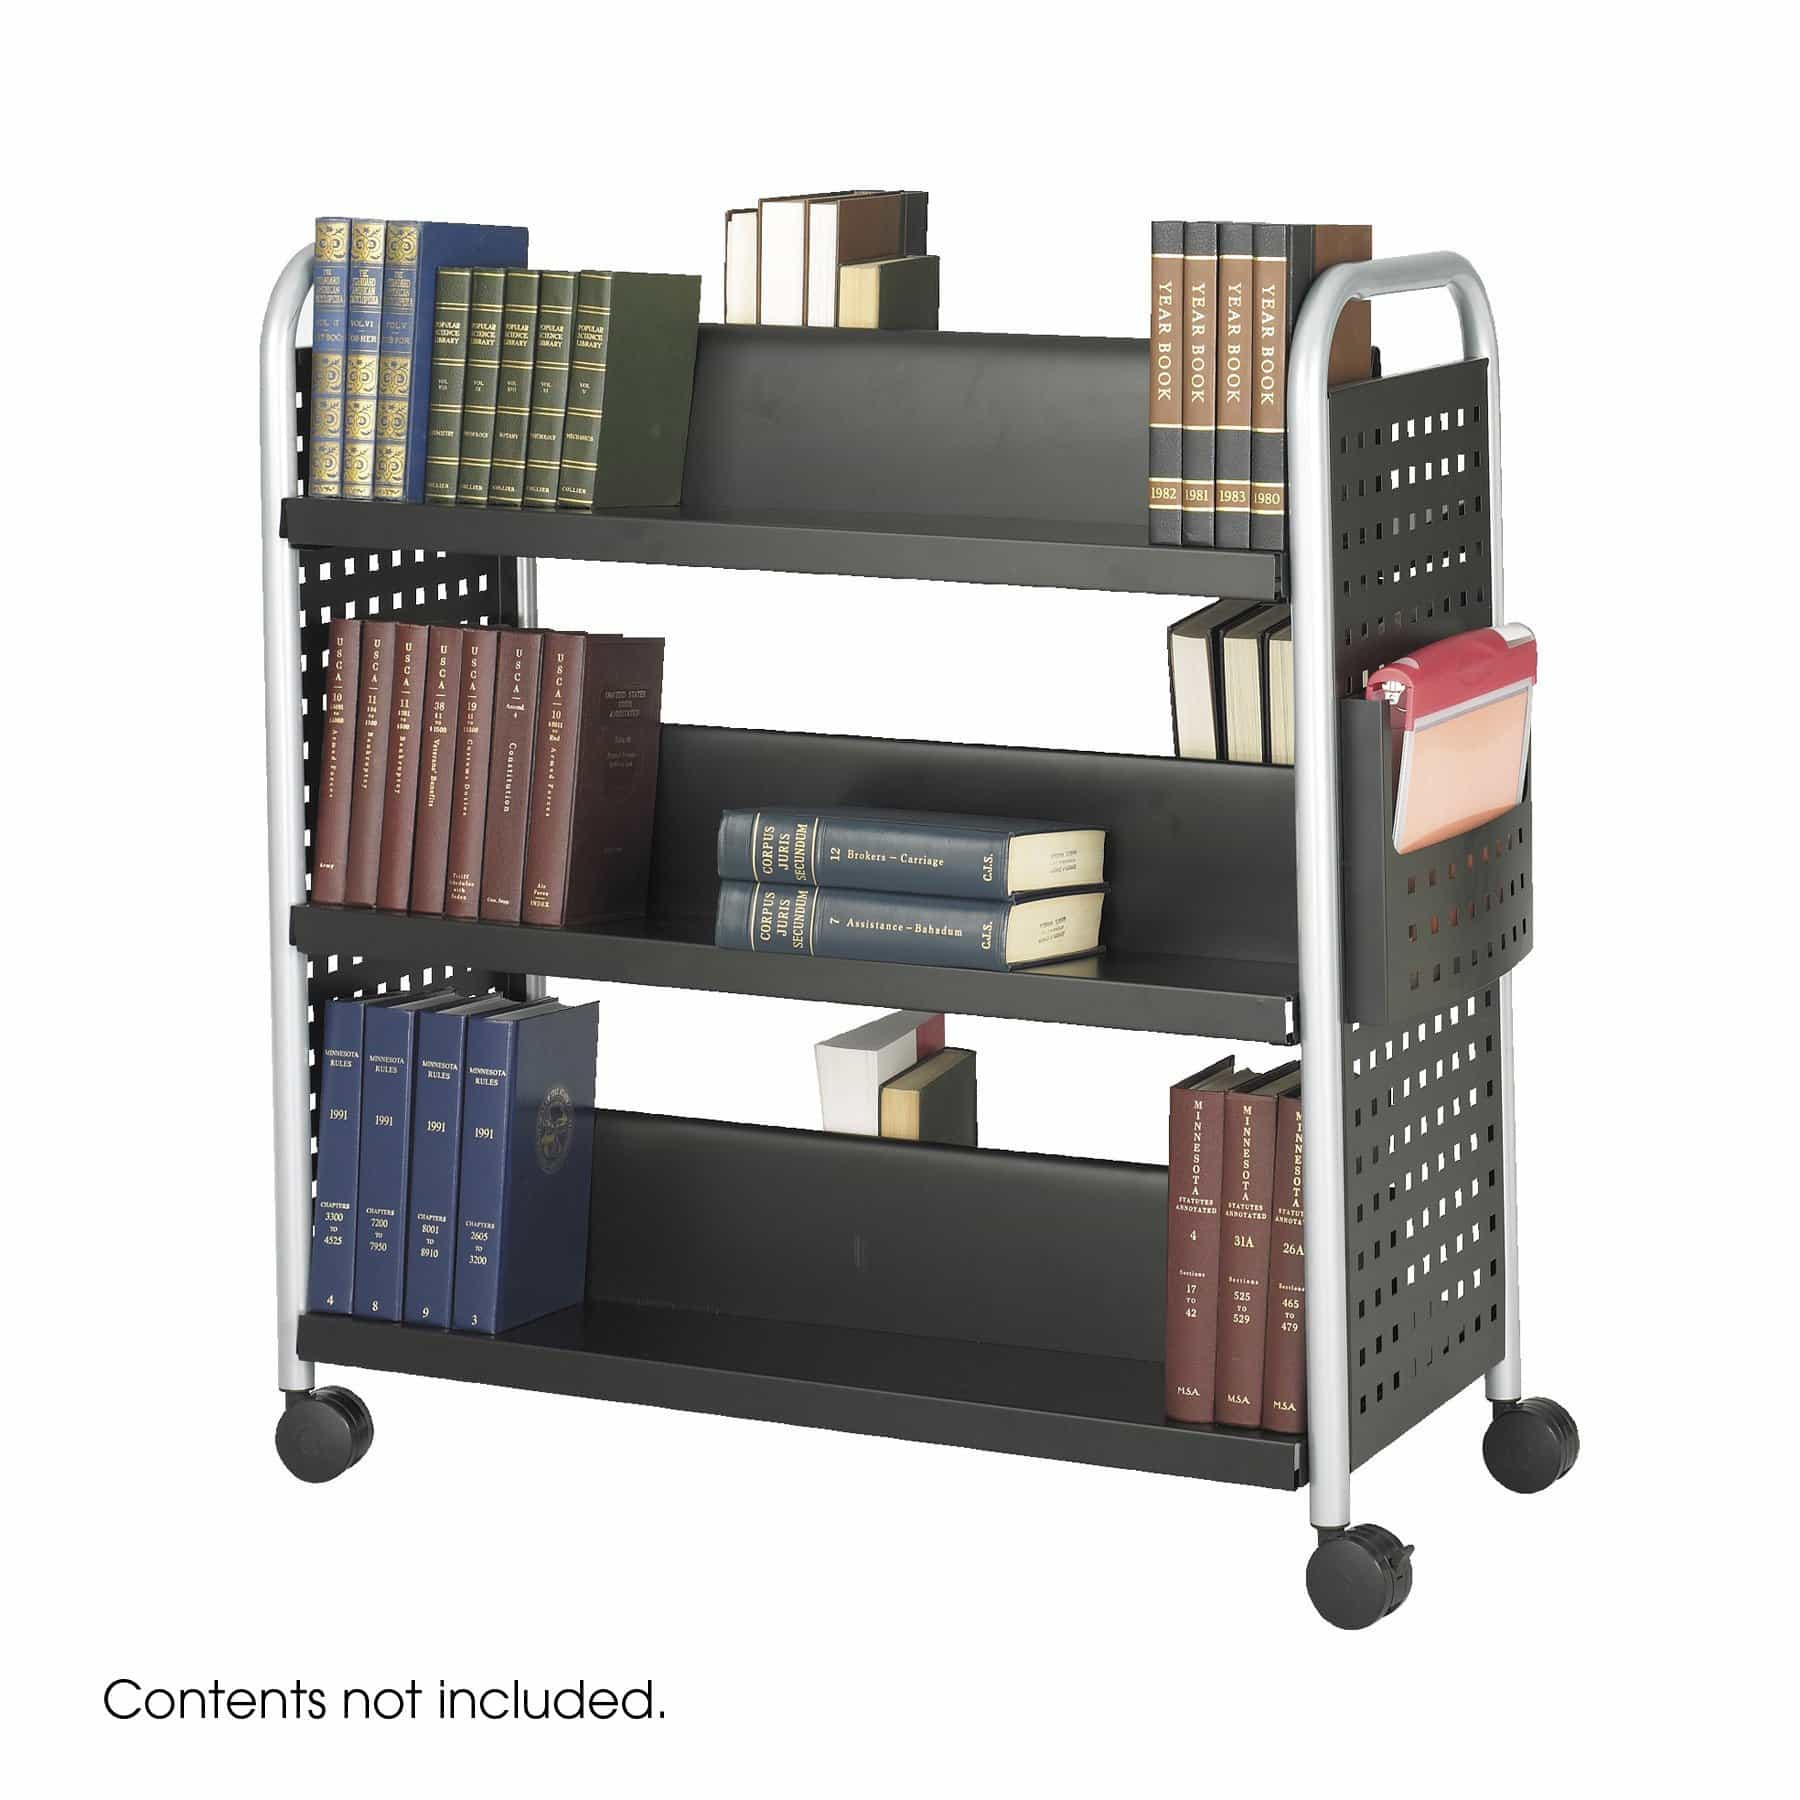 bedinhome - 5335BL Safco Black / Silver Scoot Double-Sided steel legs Book Cart 6 Shelves - Safco - Utility/Book Carts